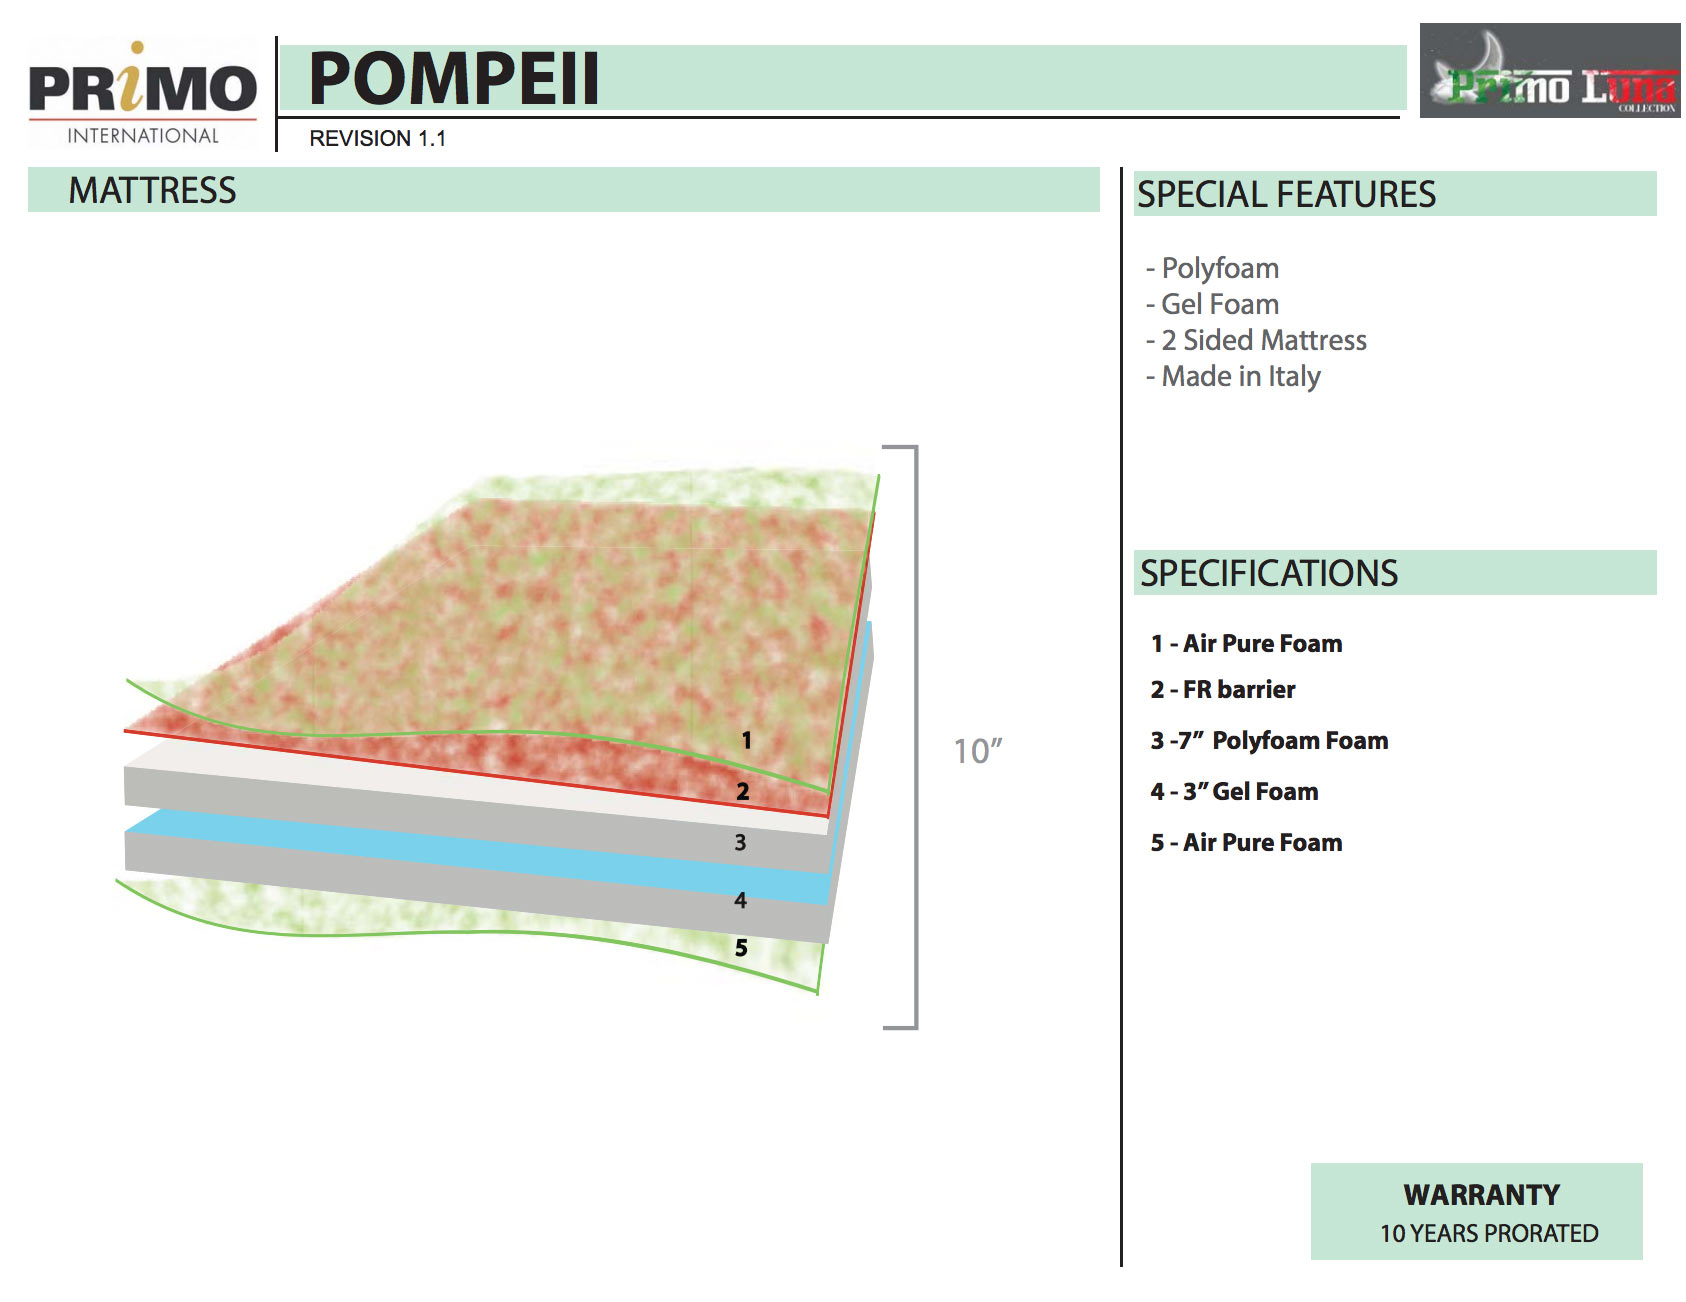 Primo Pompeii Italian Gel Memory Foam Bed Pros Mattress